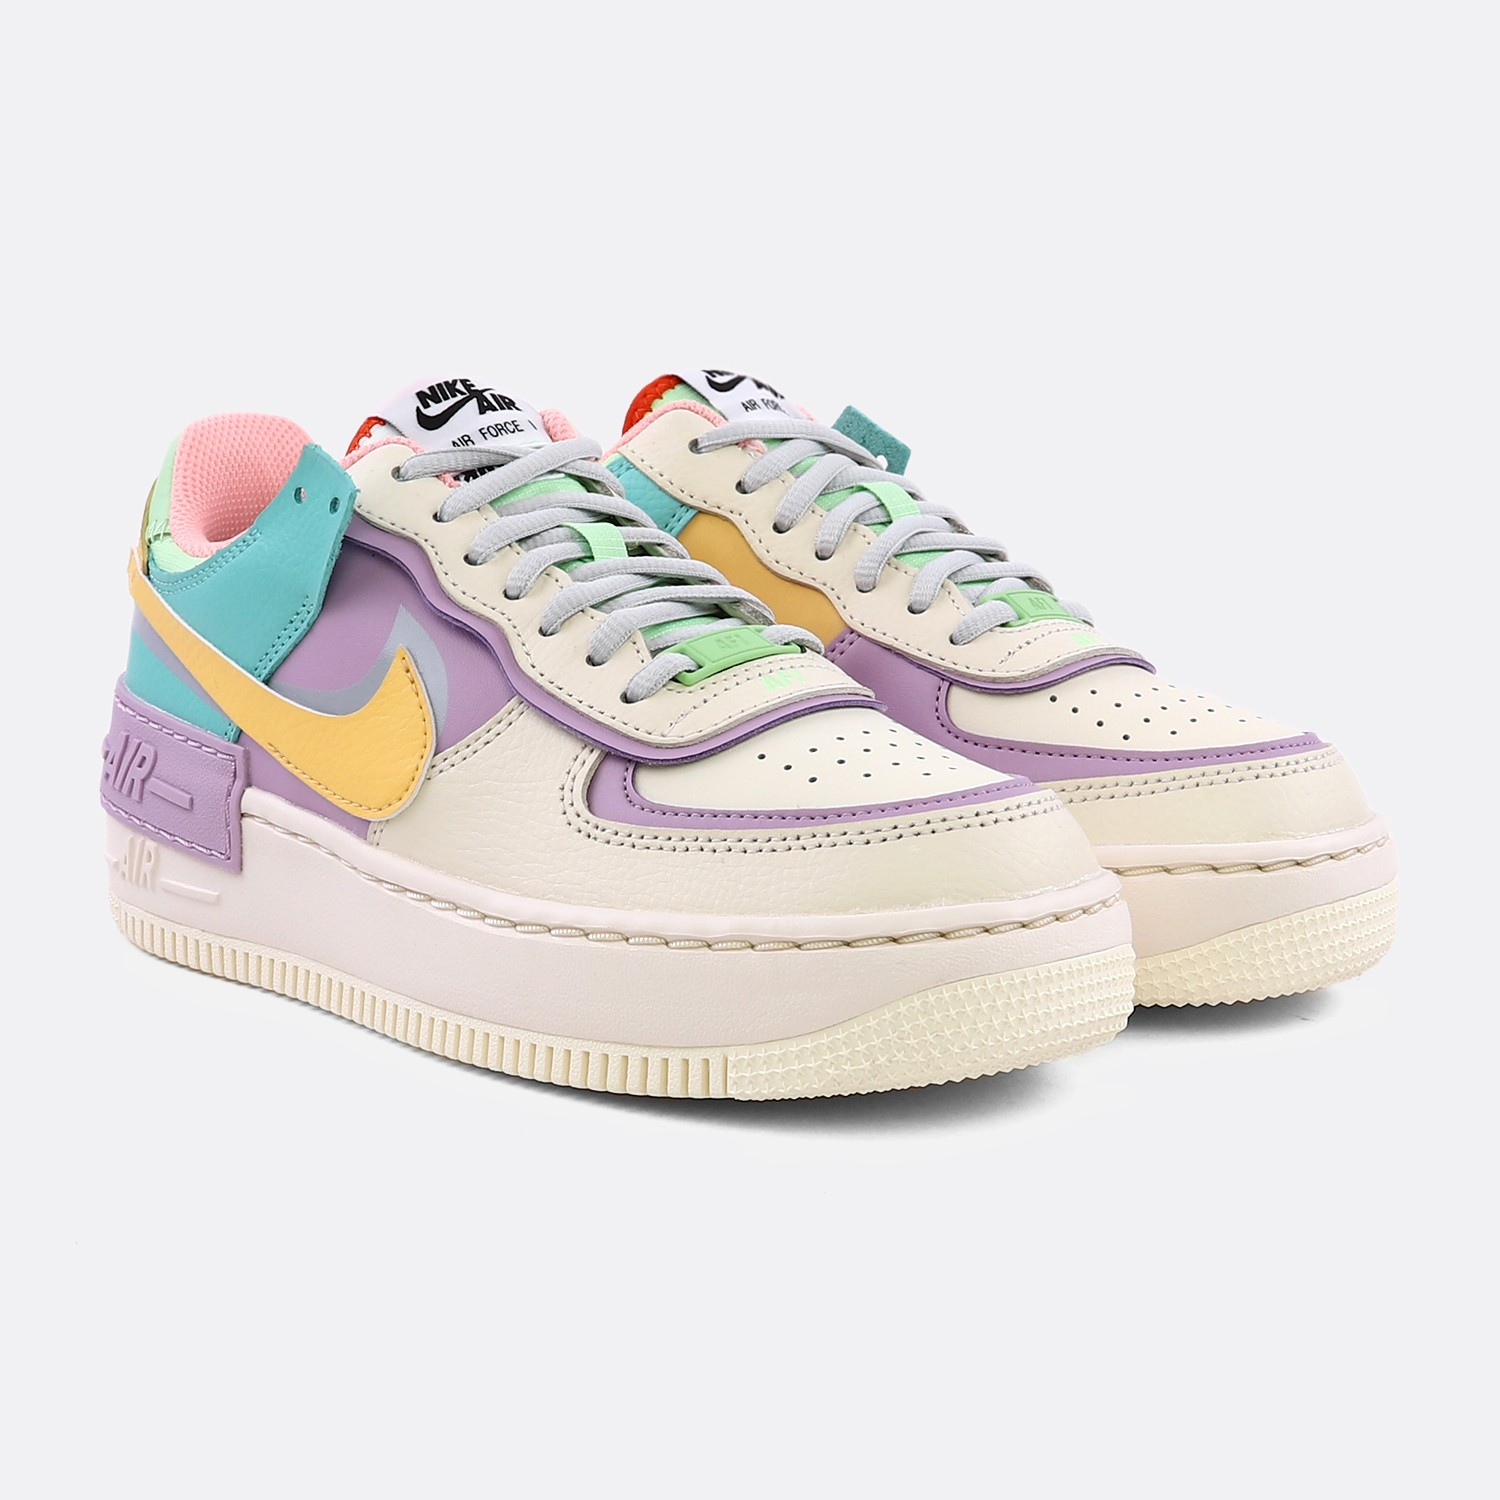 NIKE WOMEN AIR FORCE 1 SHADOW PALE IVORY CELESTIAL GOLD